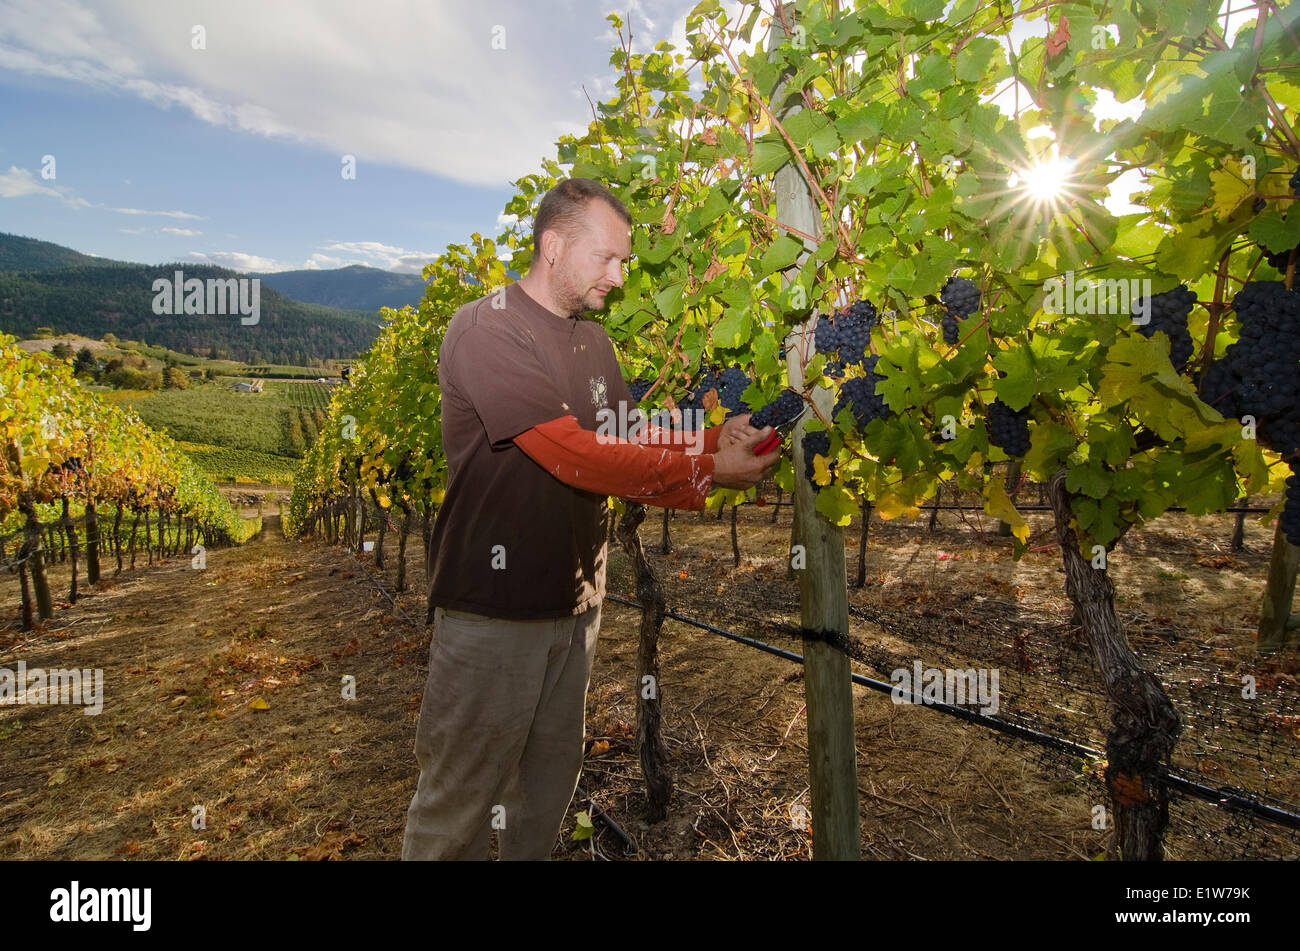 Winemaker cuts grapes in the vineyards at Thornhaven Estates Winery in Summerland in the Thompson Okanagan region - Stock Image